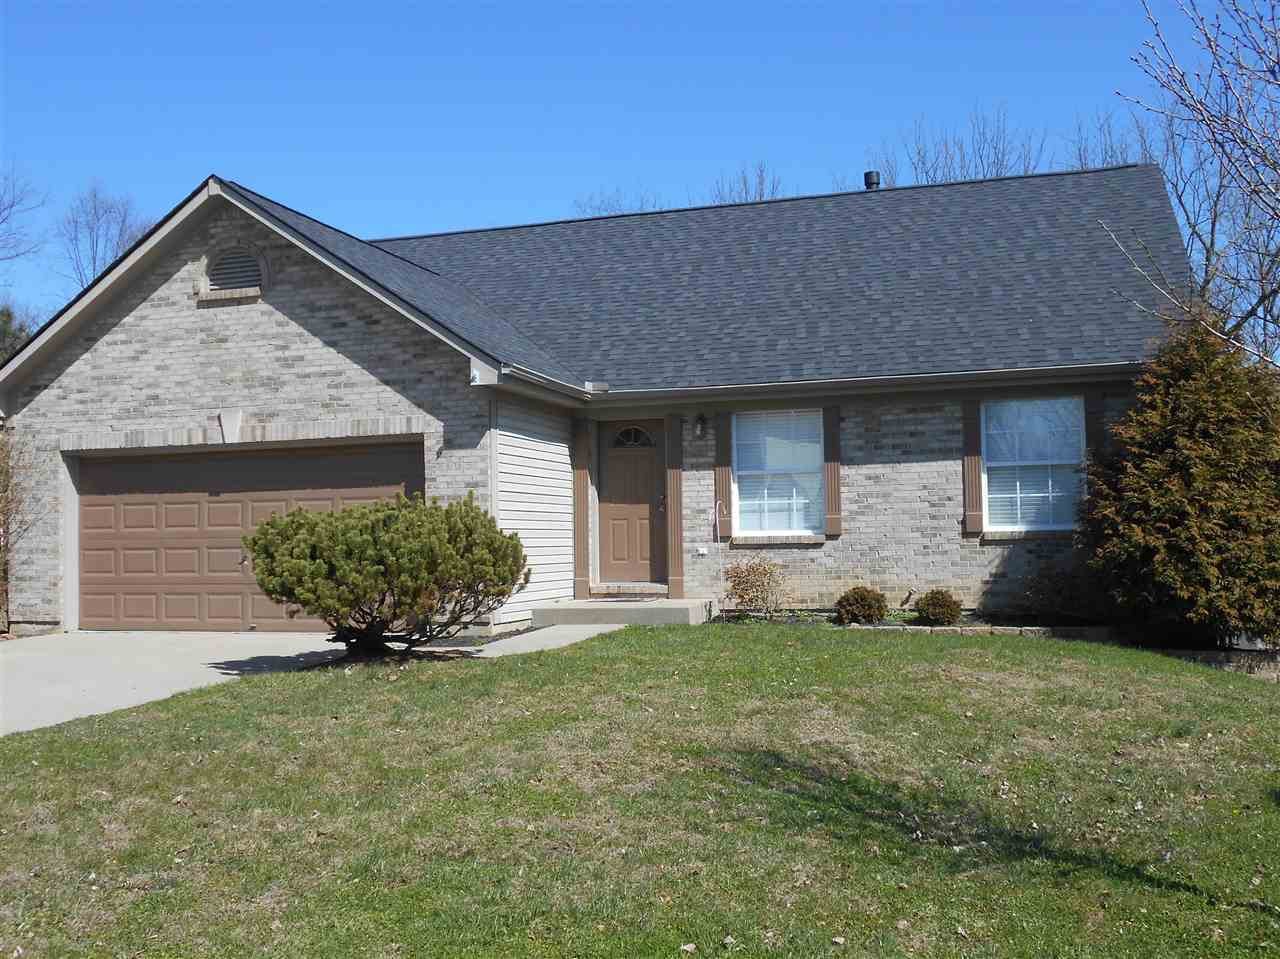 Photo 1 for 7406 Sterling Springs Way Burlington, KY 41005